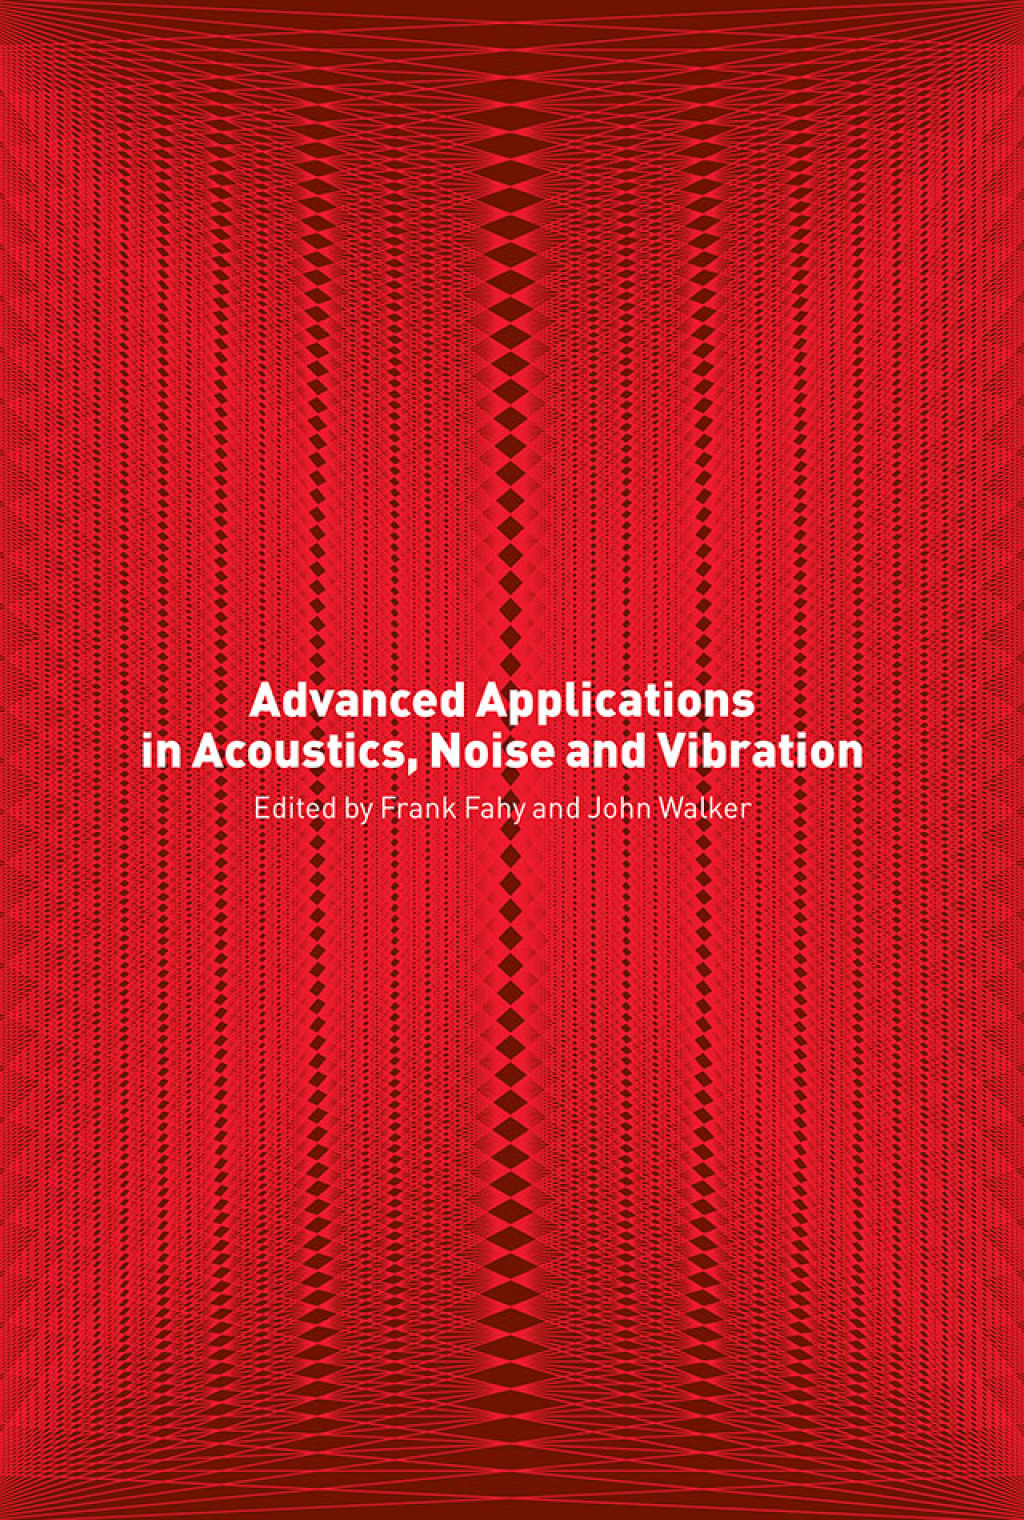 Advanced Applications in Acoustics, Noise and Vibration (ebook) eBooks